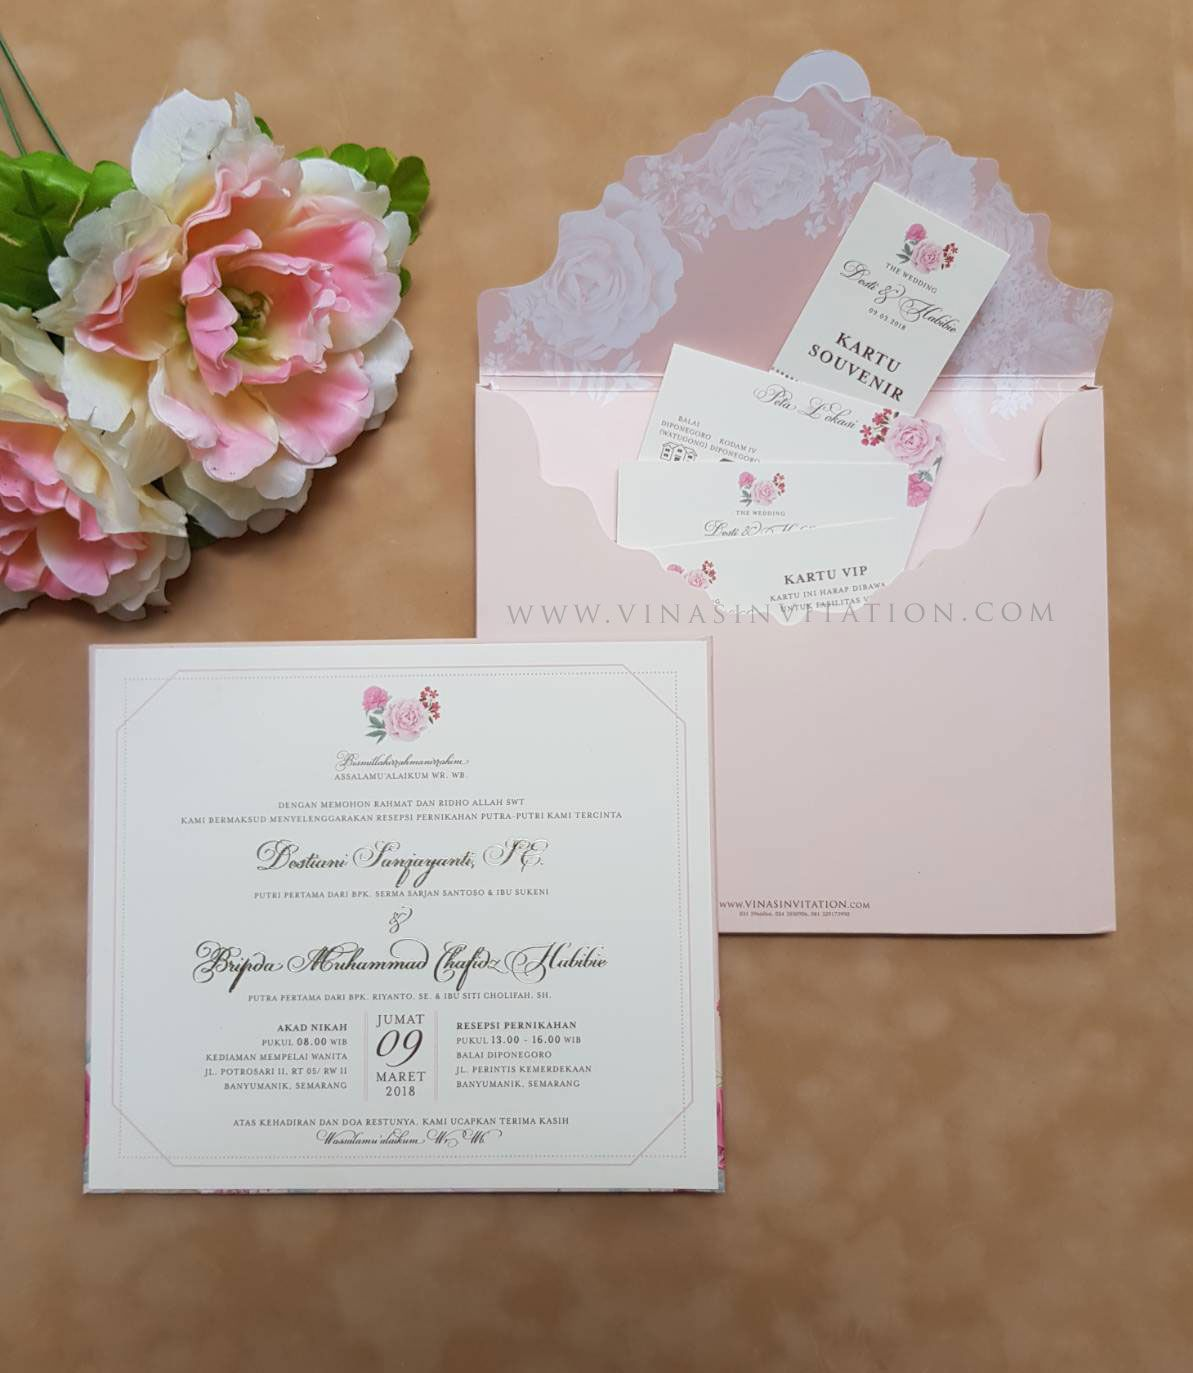 vinas invitation. sydney wedding invitation. indonesia wedding ...